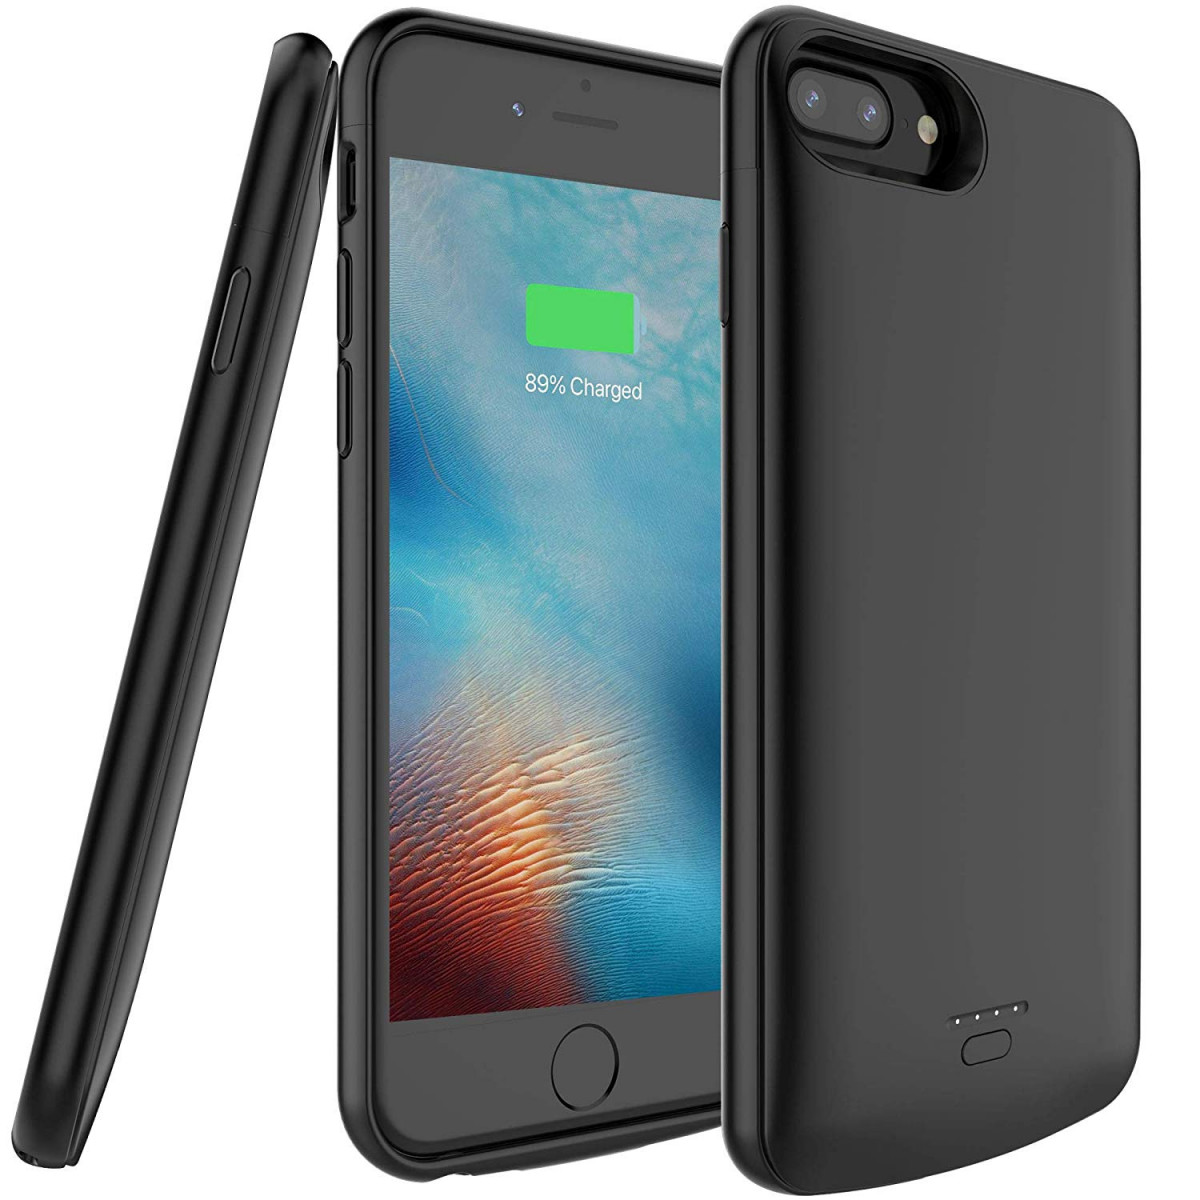 hot sale online 1c317 60b7b 5500mAh Portable Charger Case for iPhone 6 Plus/6s Plus/7 Plus/8  Plus(Support Wired Earphones),Rechargeable Protective Extended Battery Pack  Charging ...